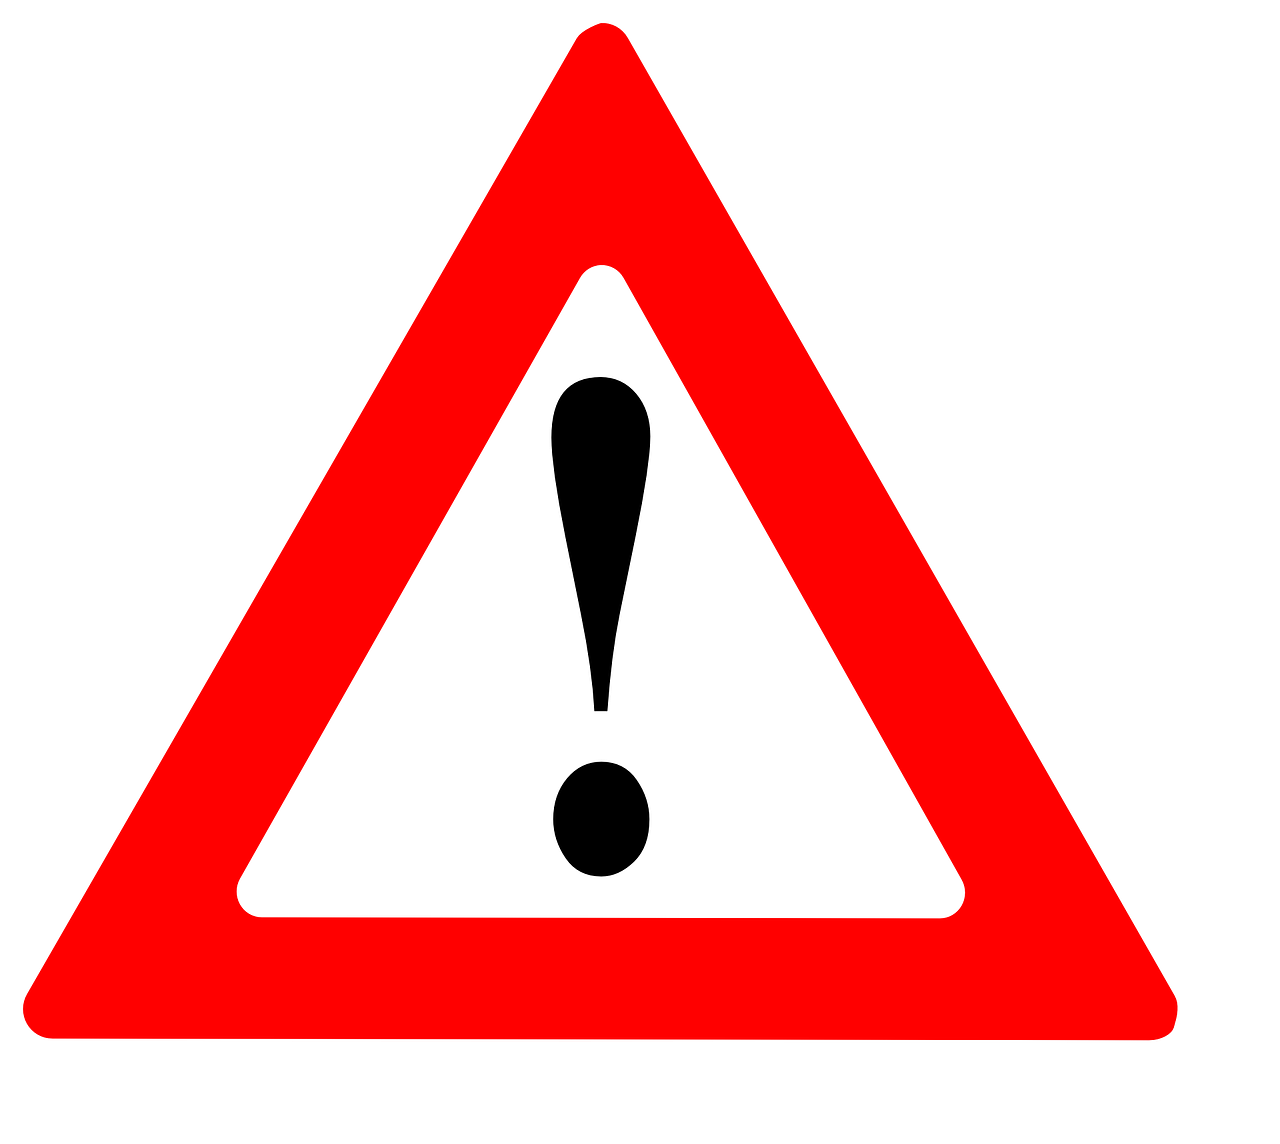 Panneau triangle de signalisation : attention